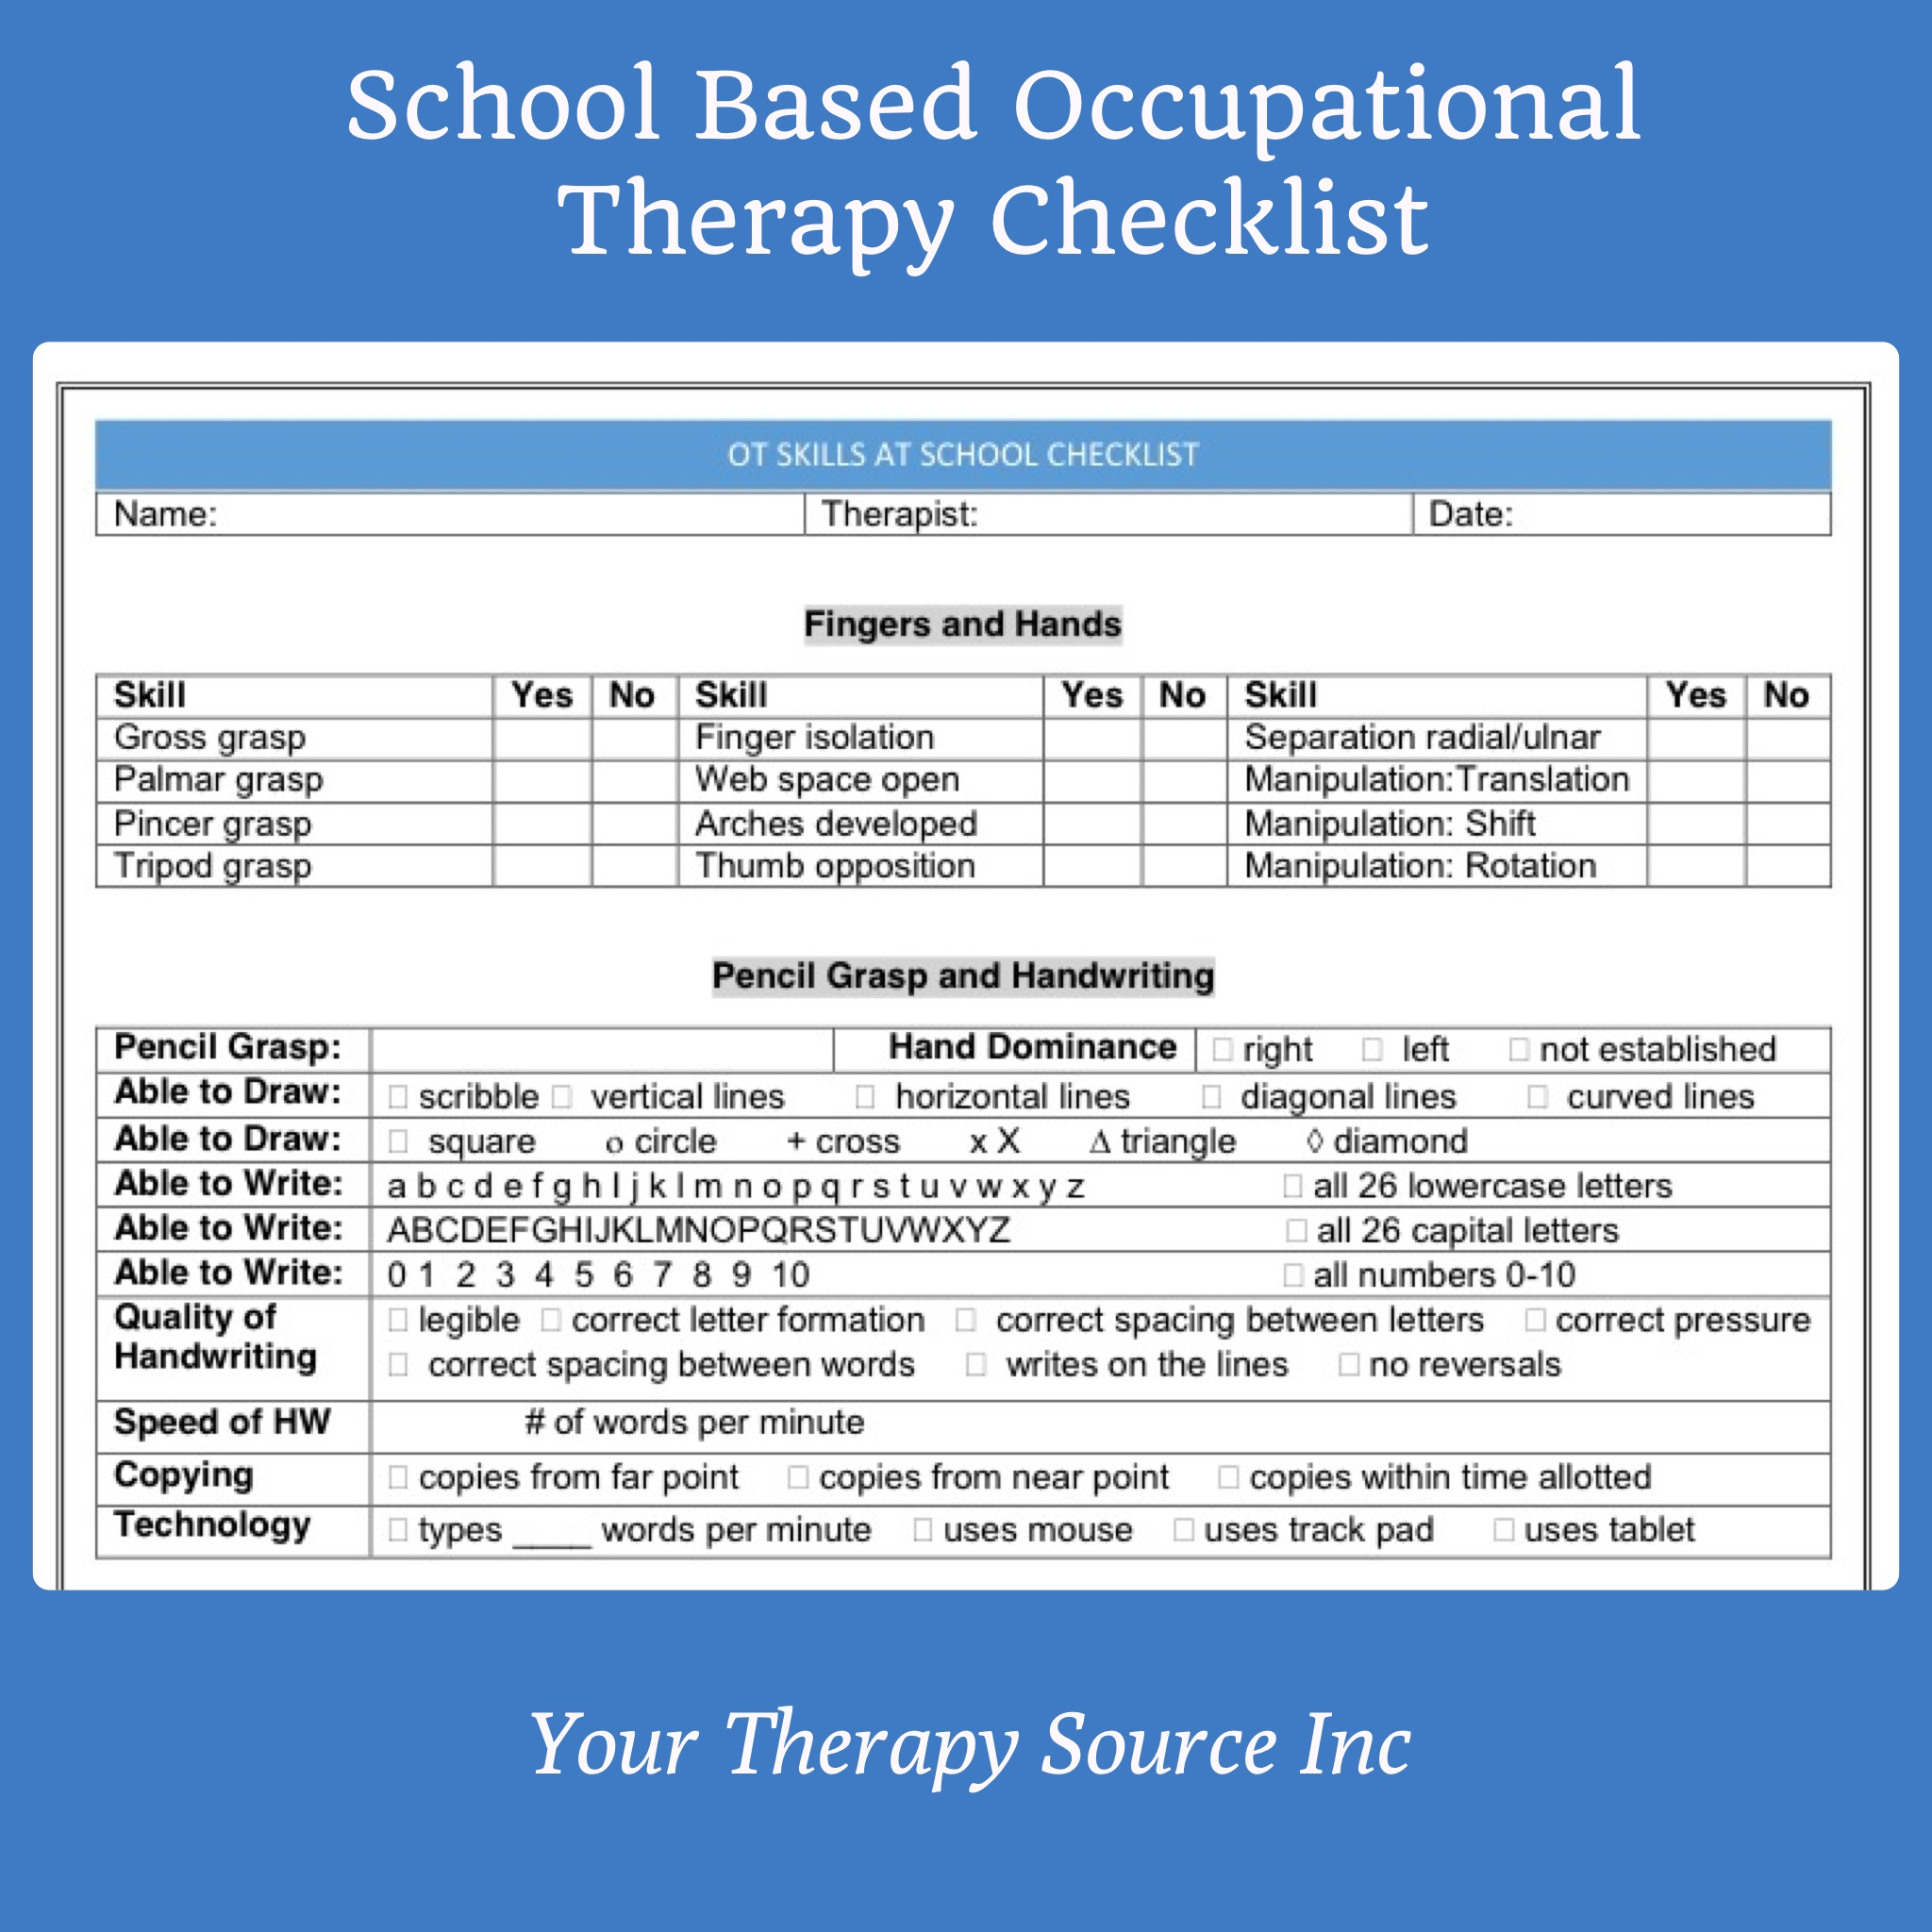 School Based Occupational Therapy Screening Form Checklist Your